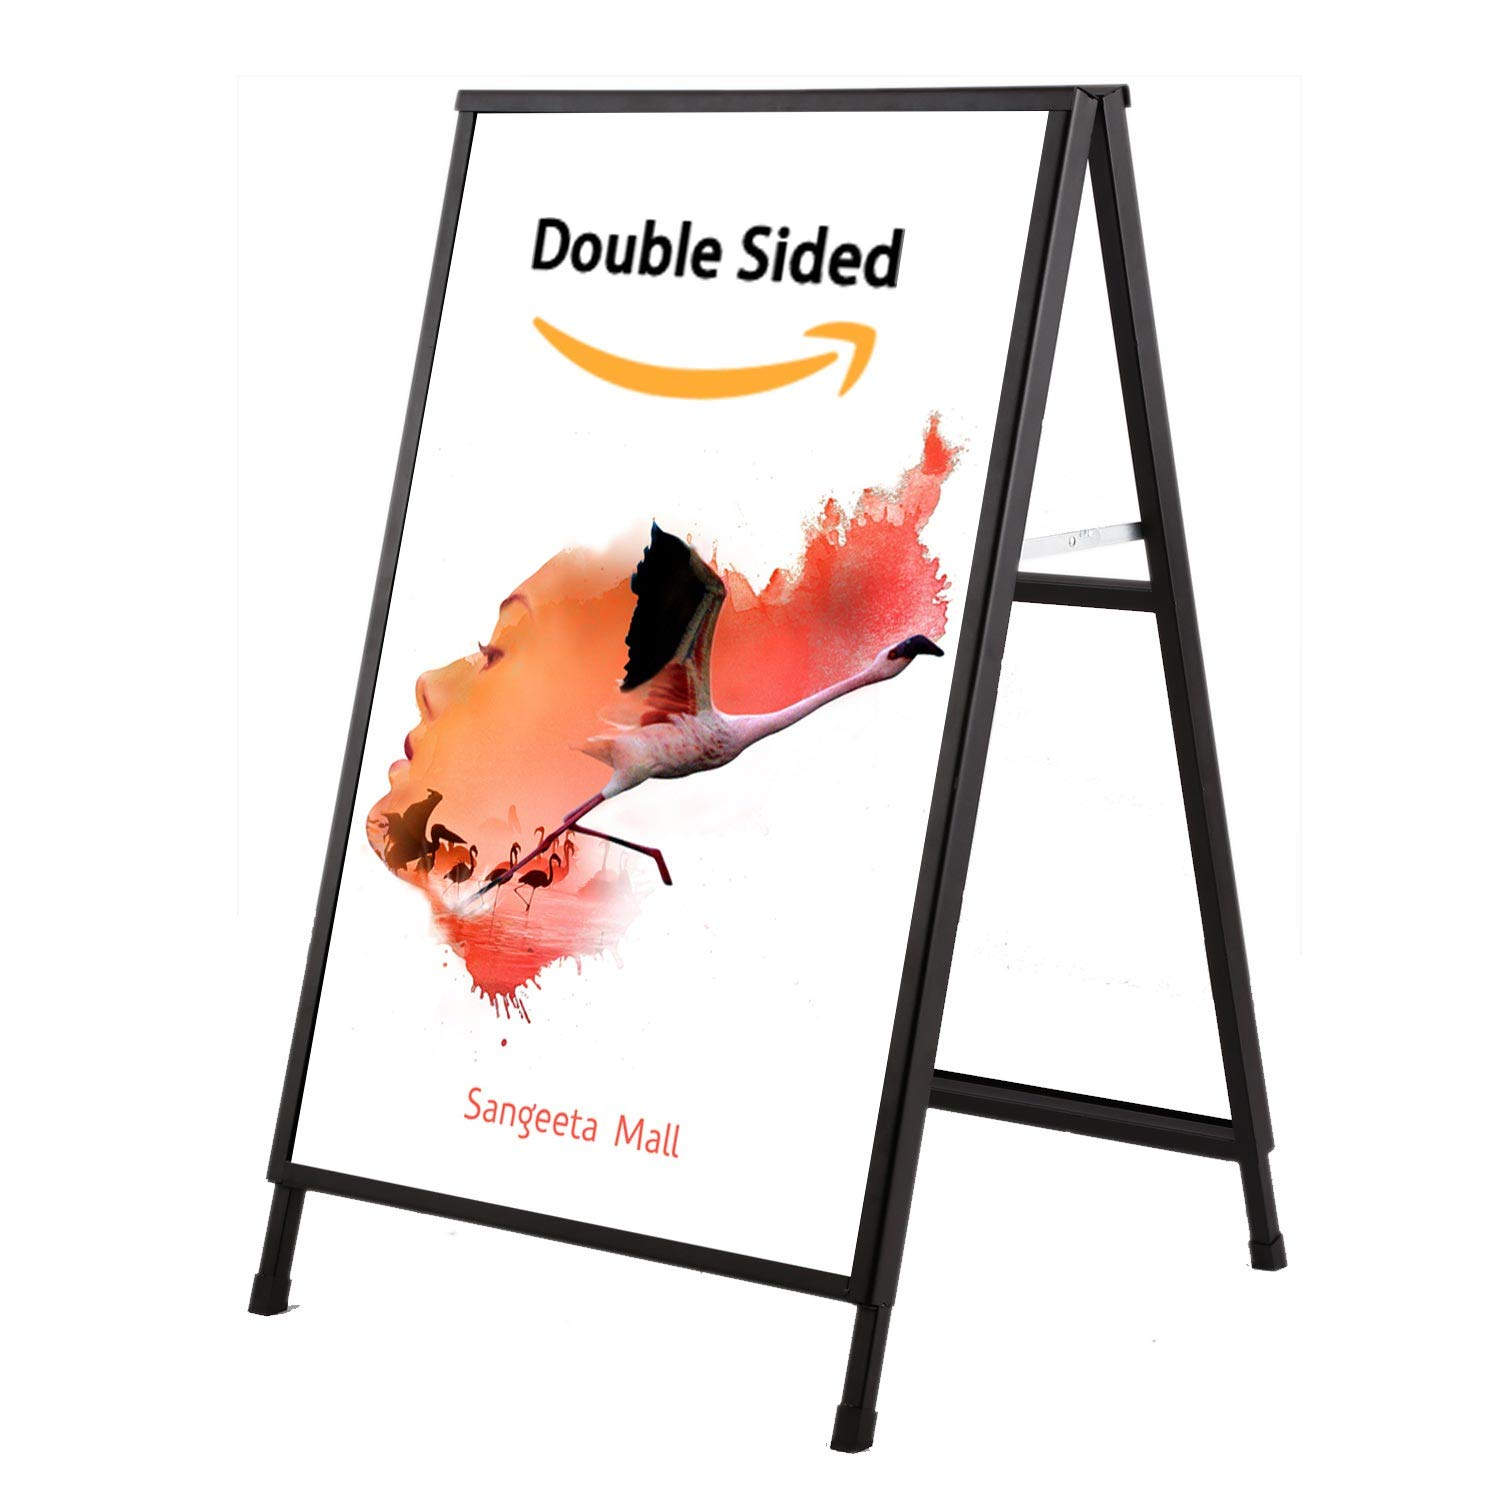 [Upgraded] A Frame Sidewalk Sign for Posters, Double Sided, Metal Frame Sandwich Board Signs 24x36 Inch, 2 Corrugated Plastic Included by Starrier